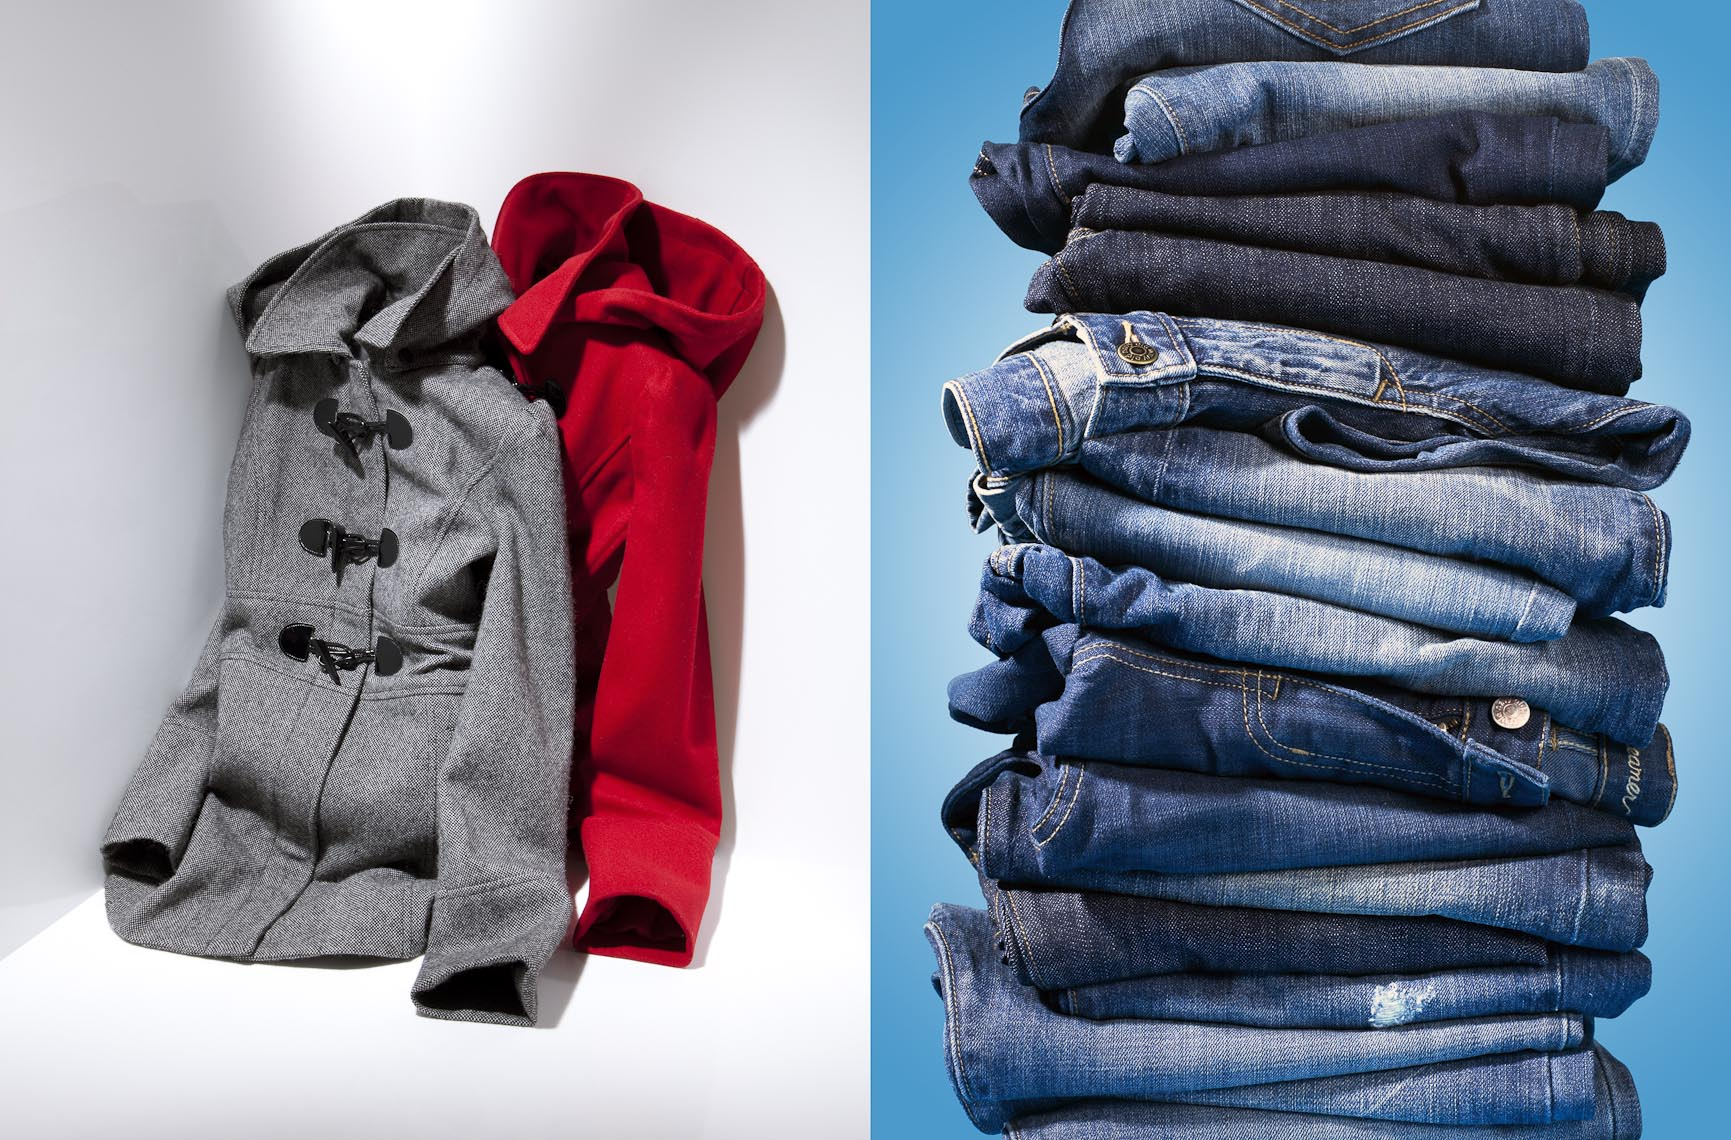 Apparel Still Life, Hooded Coats and Jeans Stack